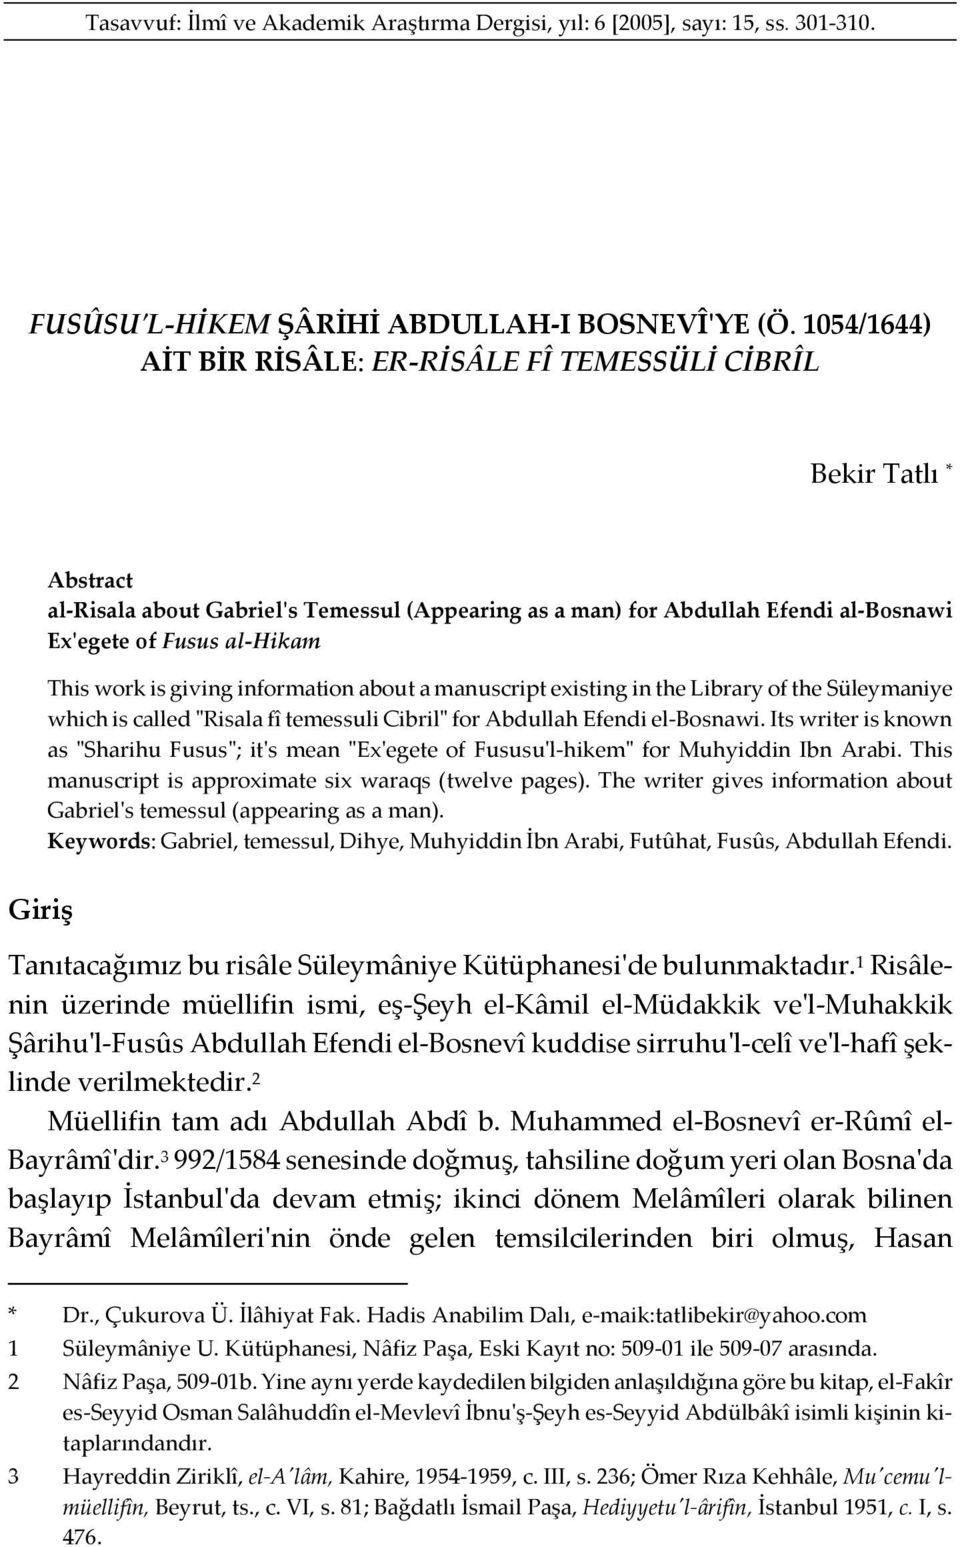 work is giving information about a manuscript existing in the Library of the Süleymaniye which is called ʺRisala fî temessuli Cibrilʺ for Abdullah Efendi el-bosnawi.